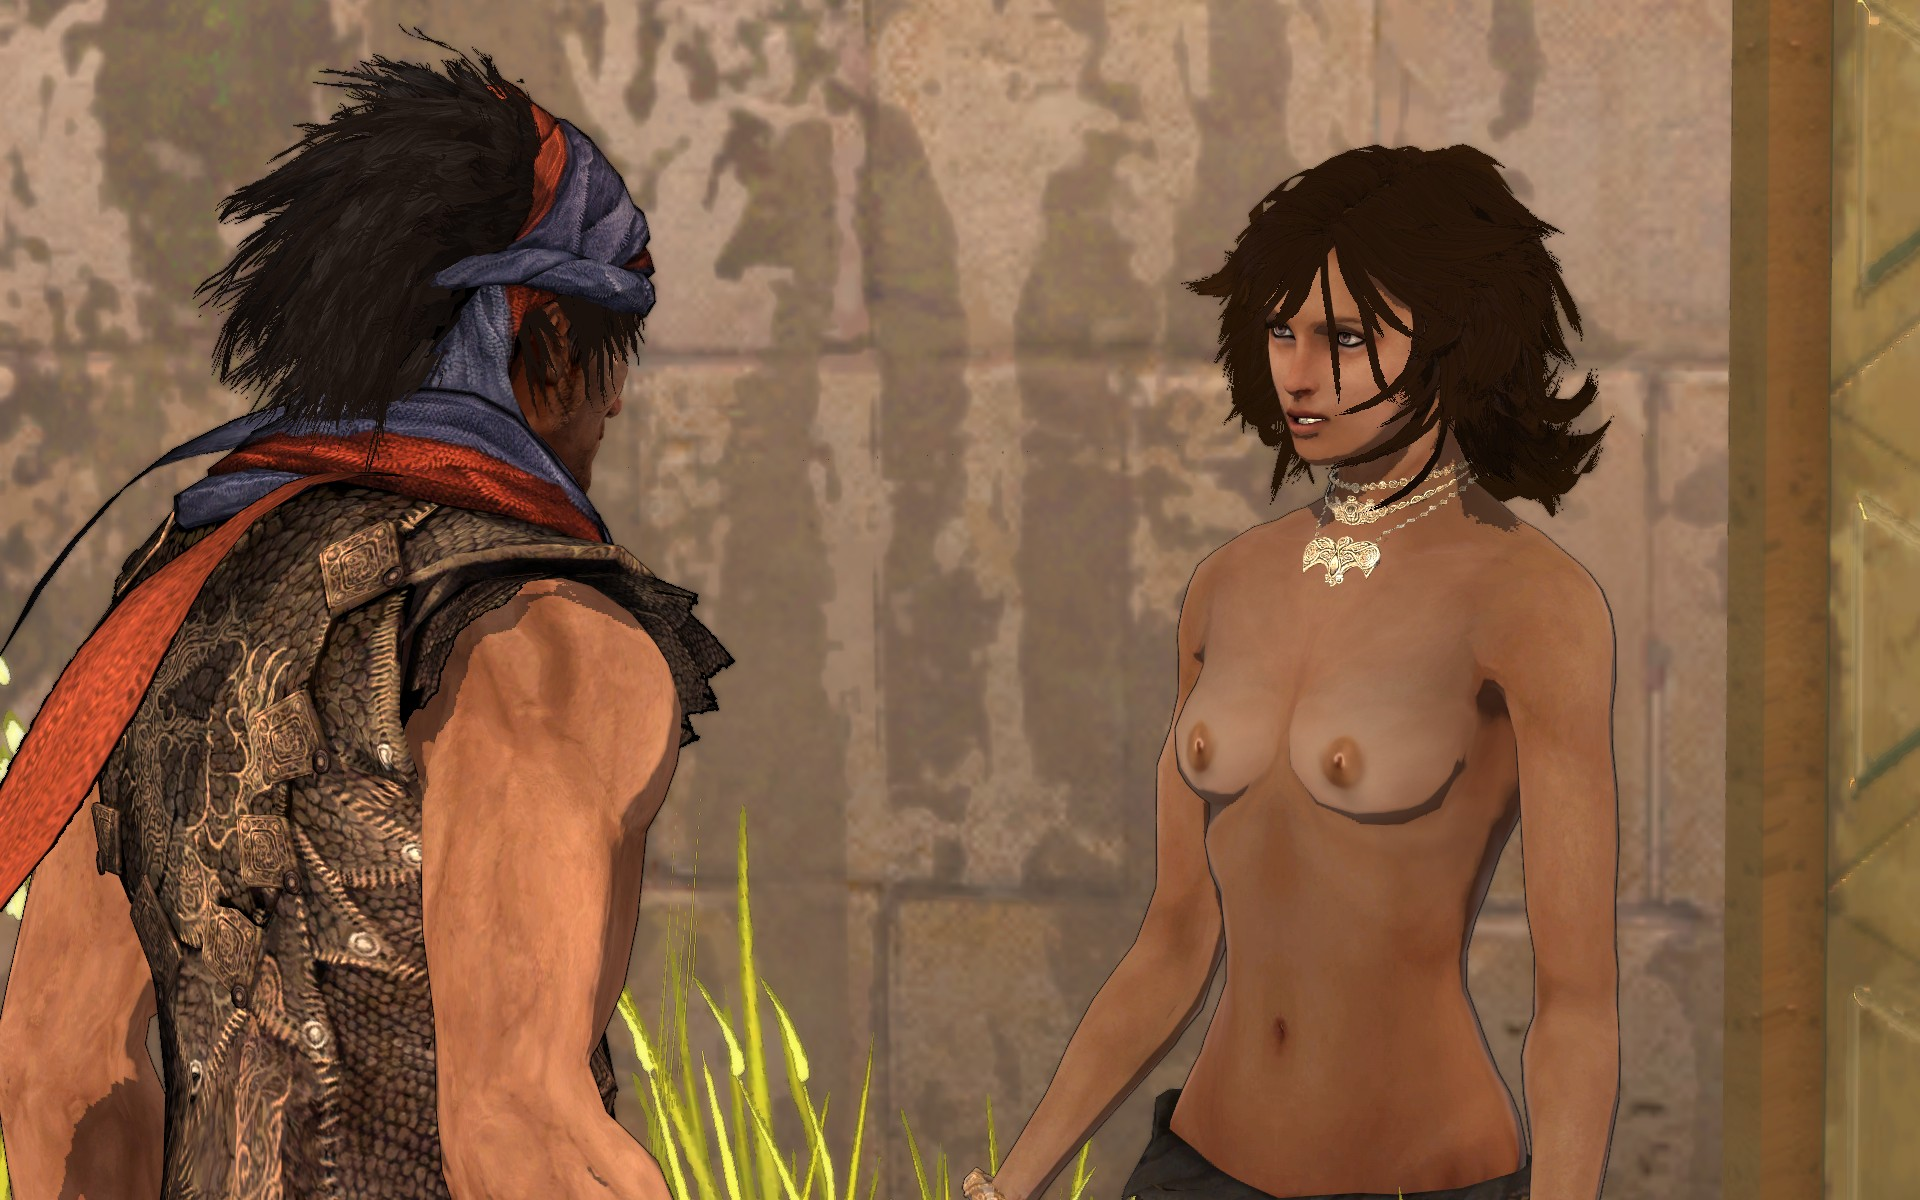 Prince of persia having gay sex videos naked tube